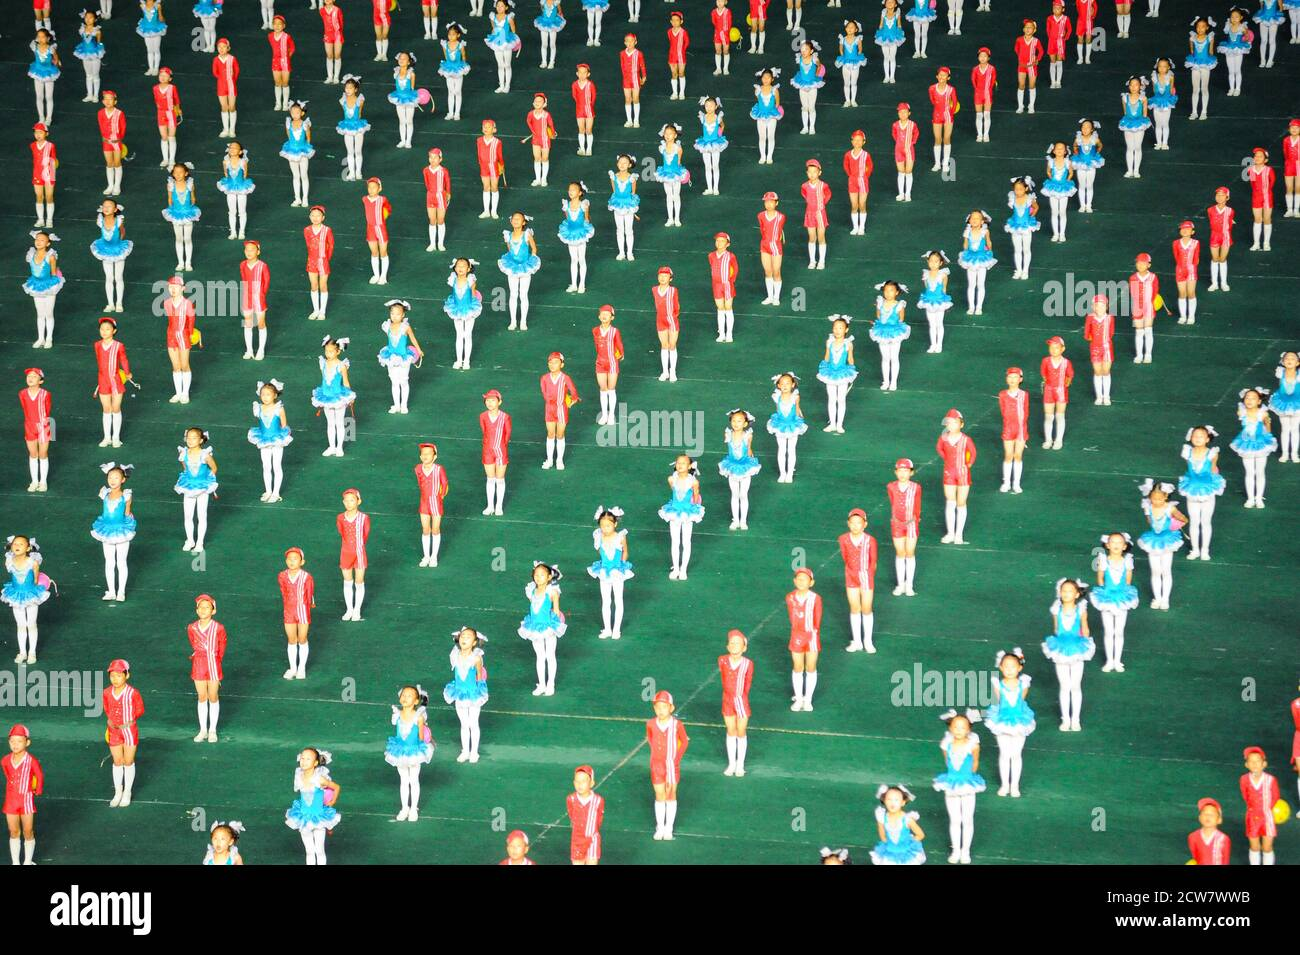 08.08.2012, Pyongyang, North Korea - Mass choreography and Artistic Performance with dancers and acrobats at May Day Stadium during Arirang Festival. Stock Photo